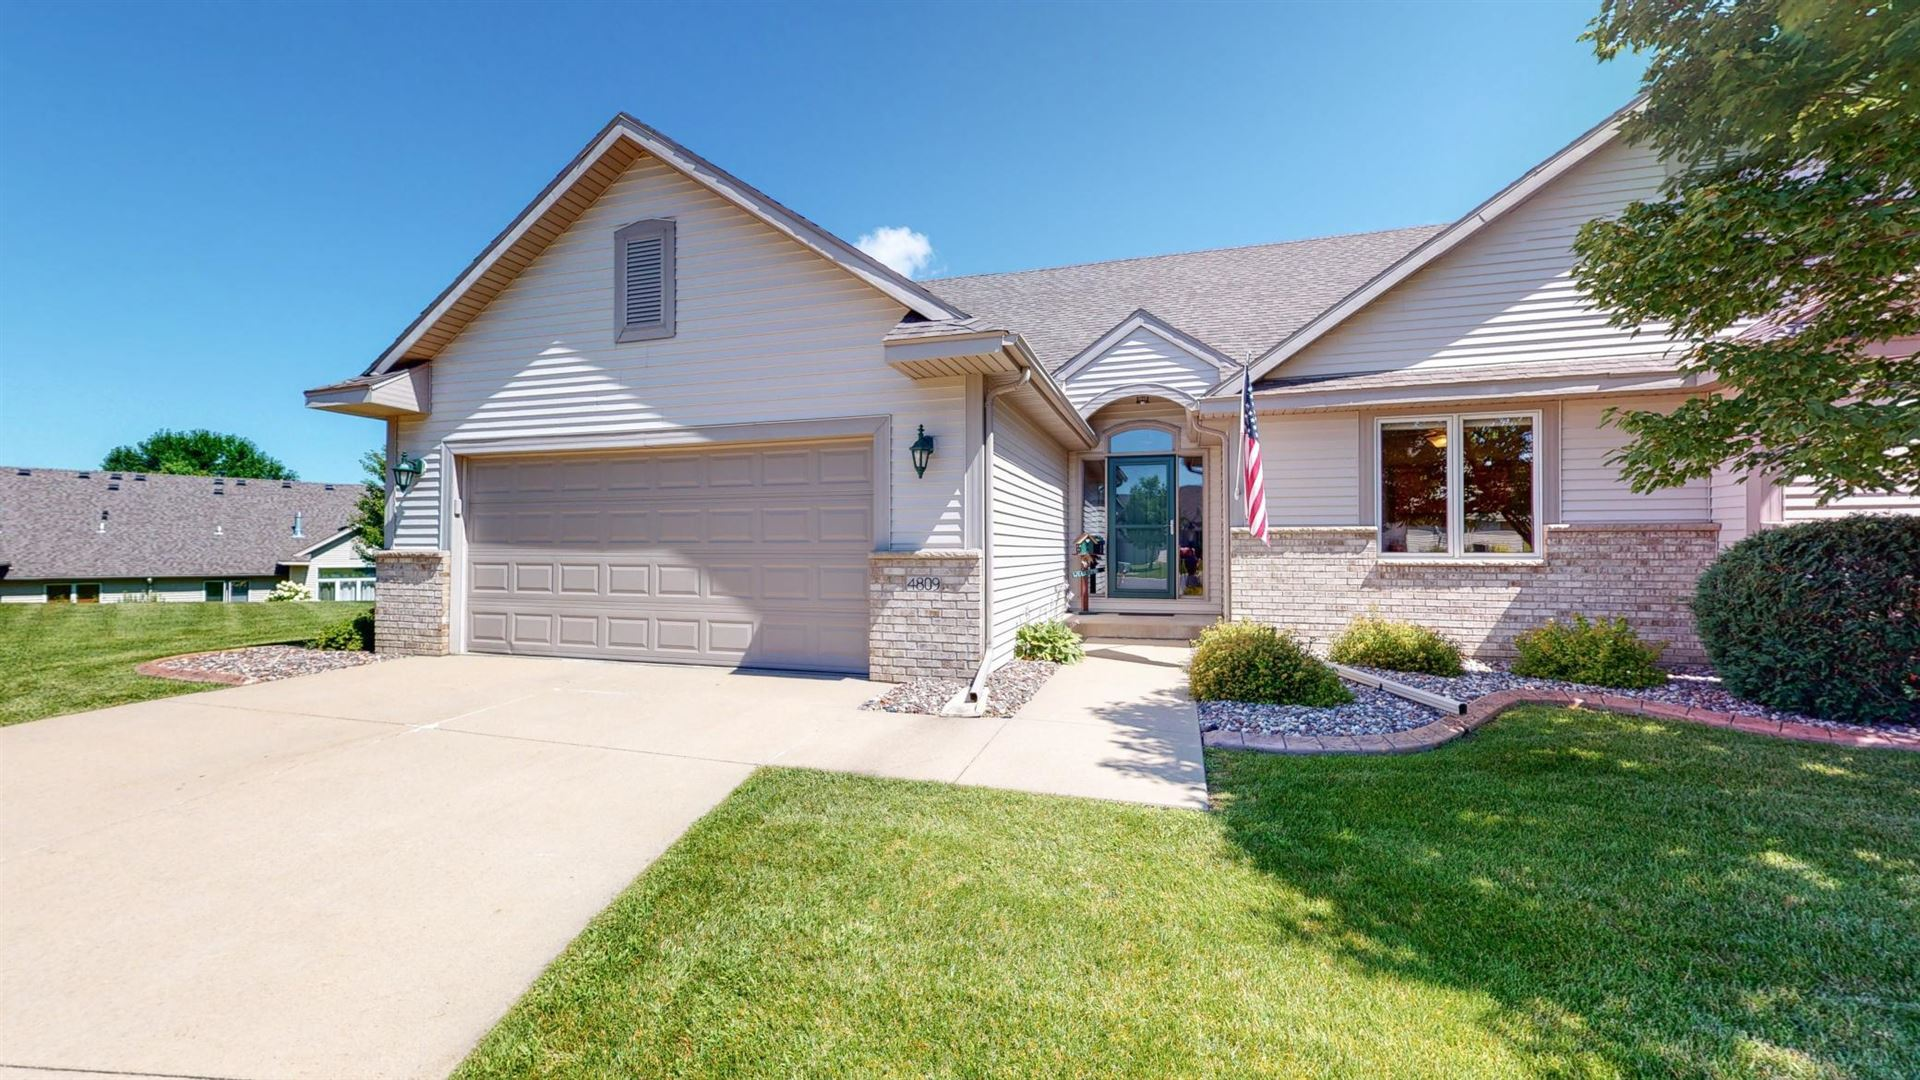 4809 Greenwood Lane NW, Rochester, MN 55901 - MLS#: 5636246